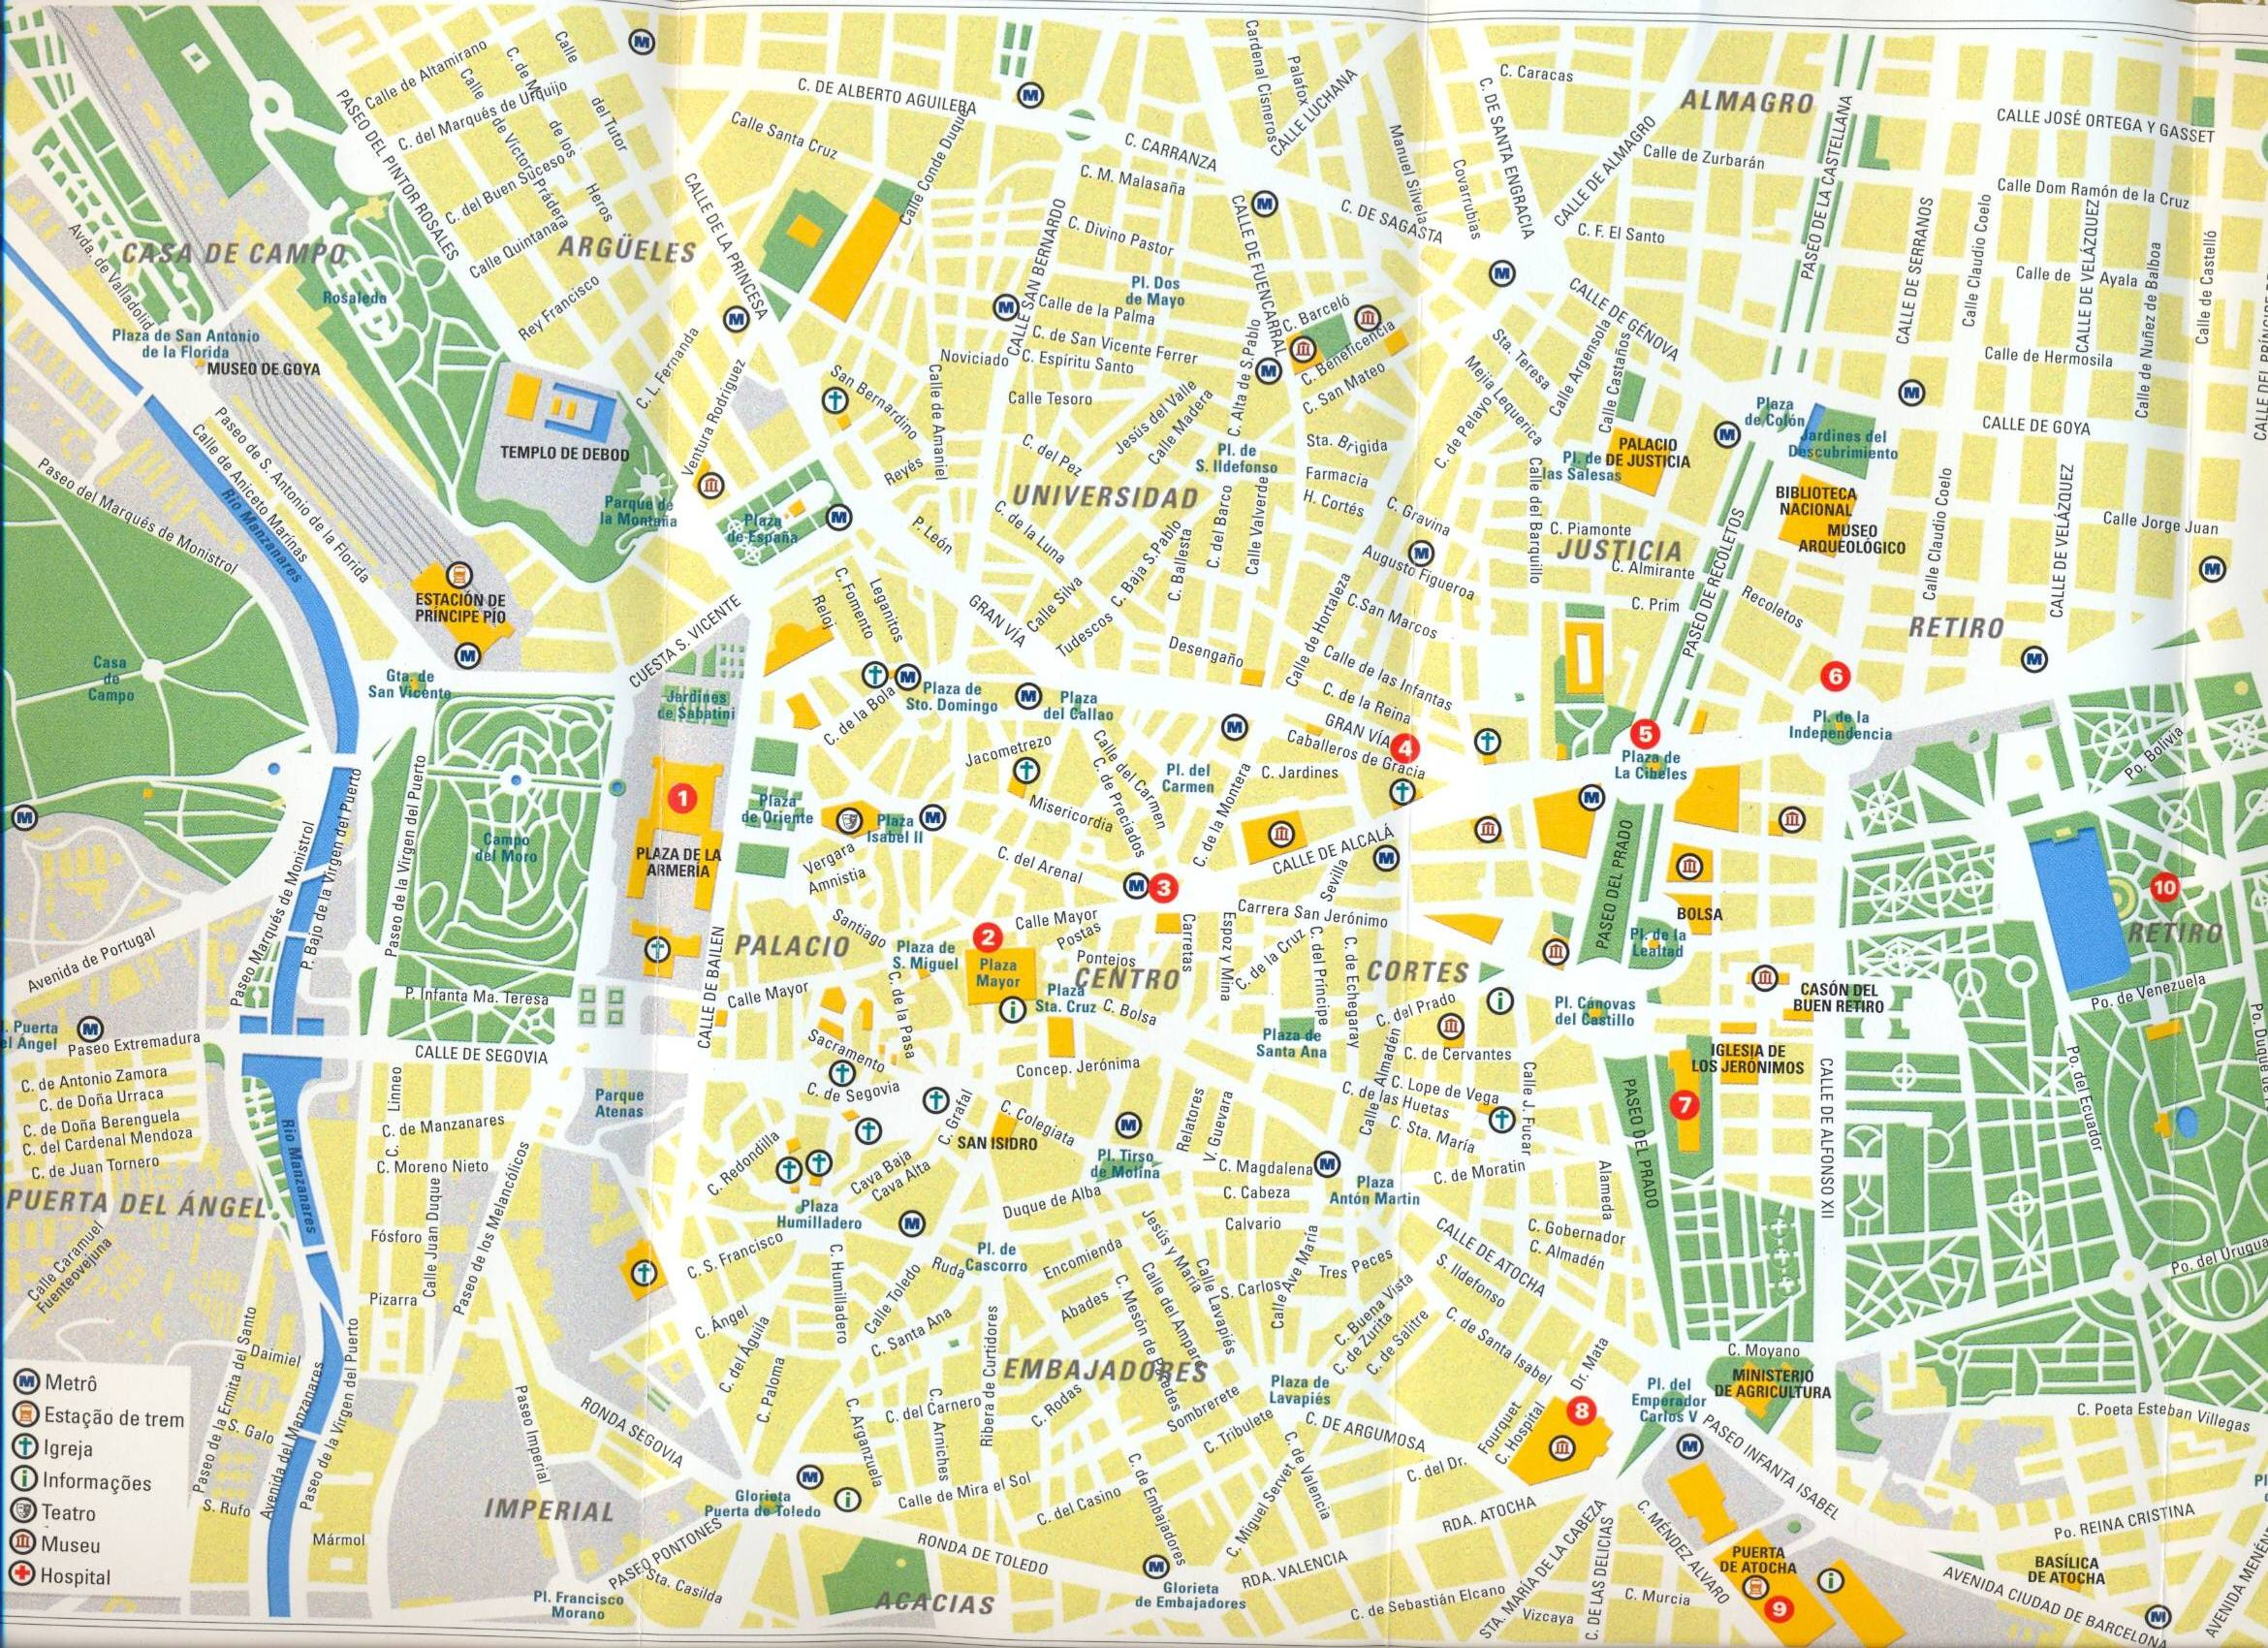 Mapa de madrid barrios de madrid for Codigo postal del barrio de salamanca en madrid